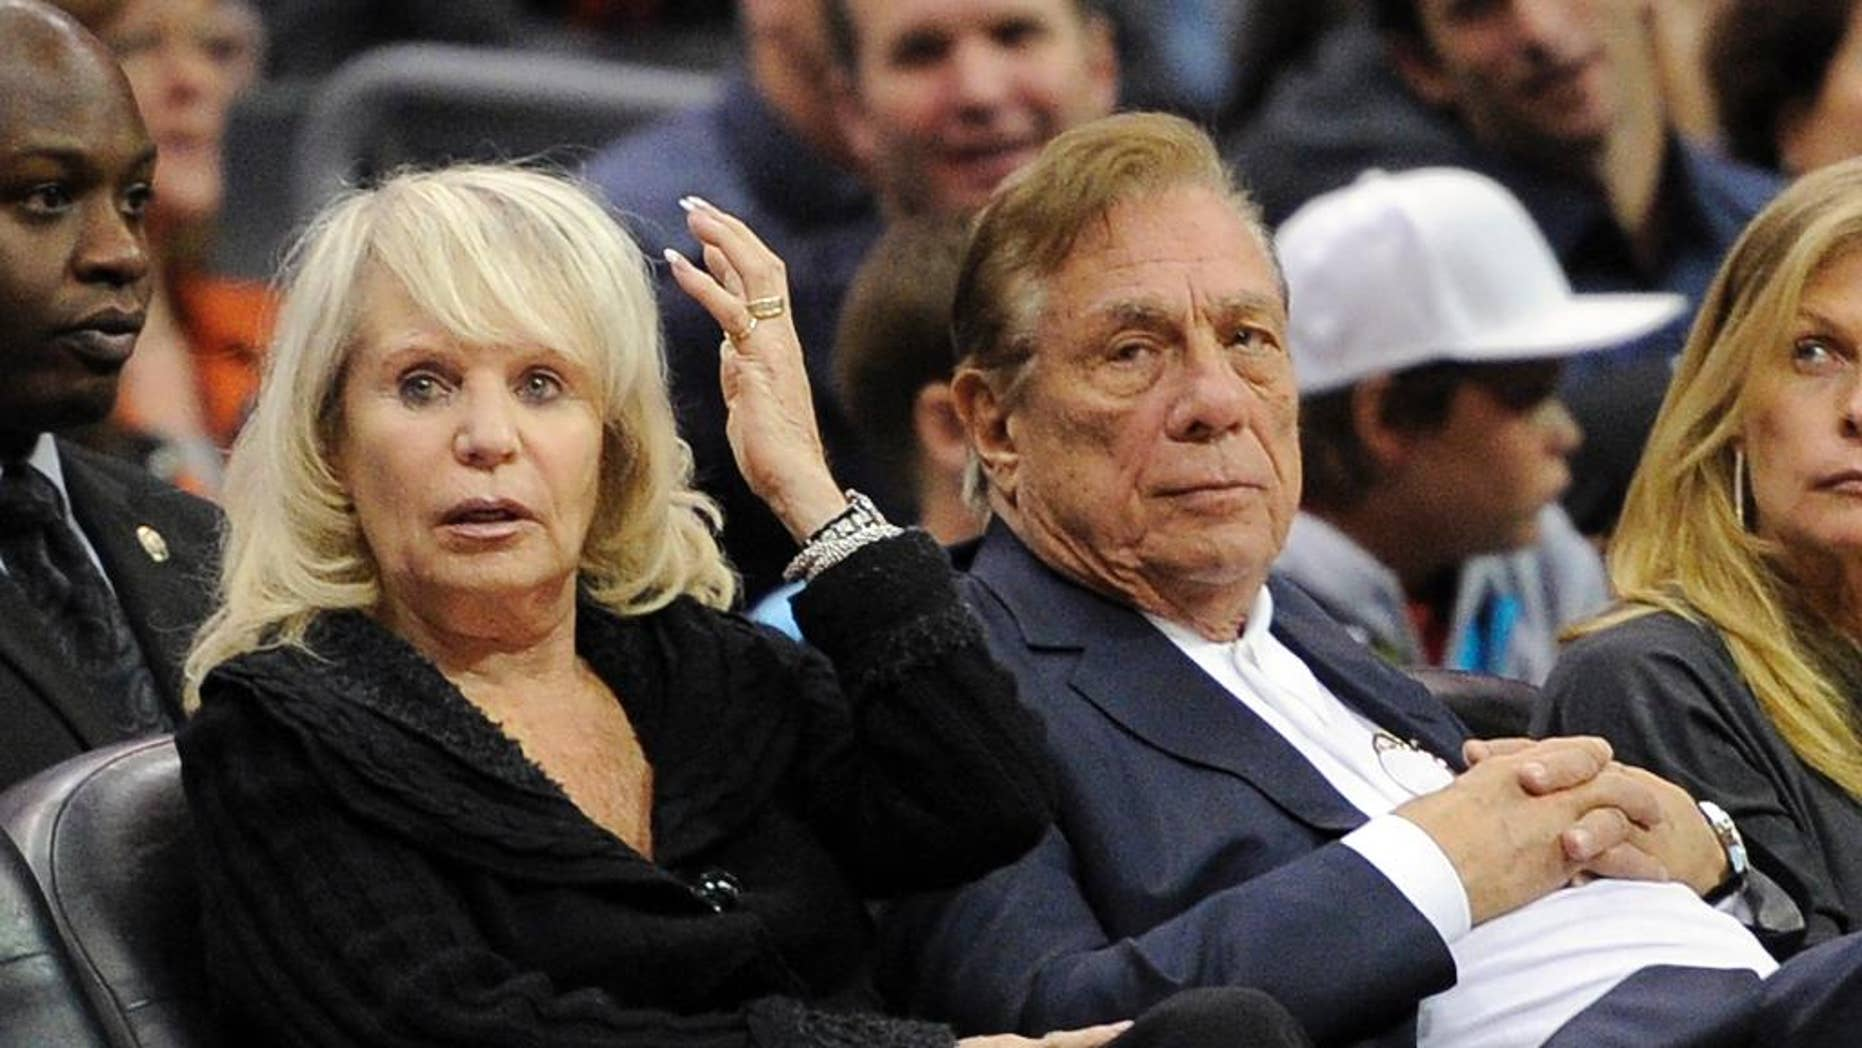 FILE - In this Nov. 12, 2010, file photo, Shelly Sterling sits with her husband, Donald Sterling, right, during the Los Angeles Clippers' NBA basketball game against the Detroit Pistons in Los Angeles. An individual with knowledge of negotiations to sell the Clippers says Shelly Sterling has reached an agreement to sell the team to former Microsoft CEO Steve Ballmer for $2 billion. The individual, who wasn't authorized to speak publicly, told The Associated Press on Thursday, May 29, 2014, that Ballmer and the Sterling Family Trust now have a binding agreement. The deal now must be presented to the NBA. (AP Photo/Mark J. Terrill, File)